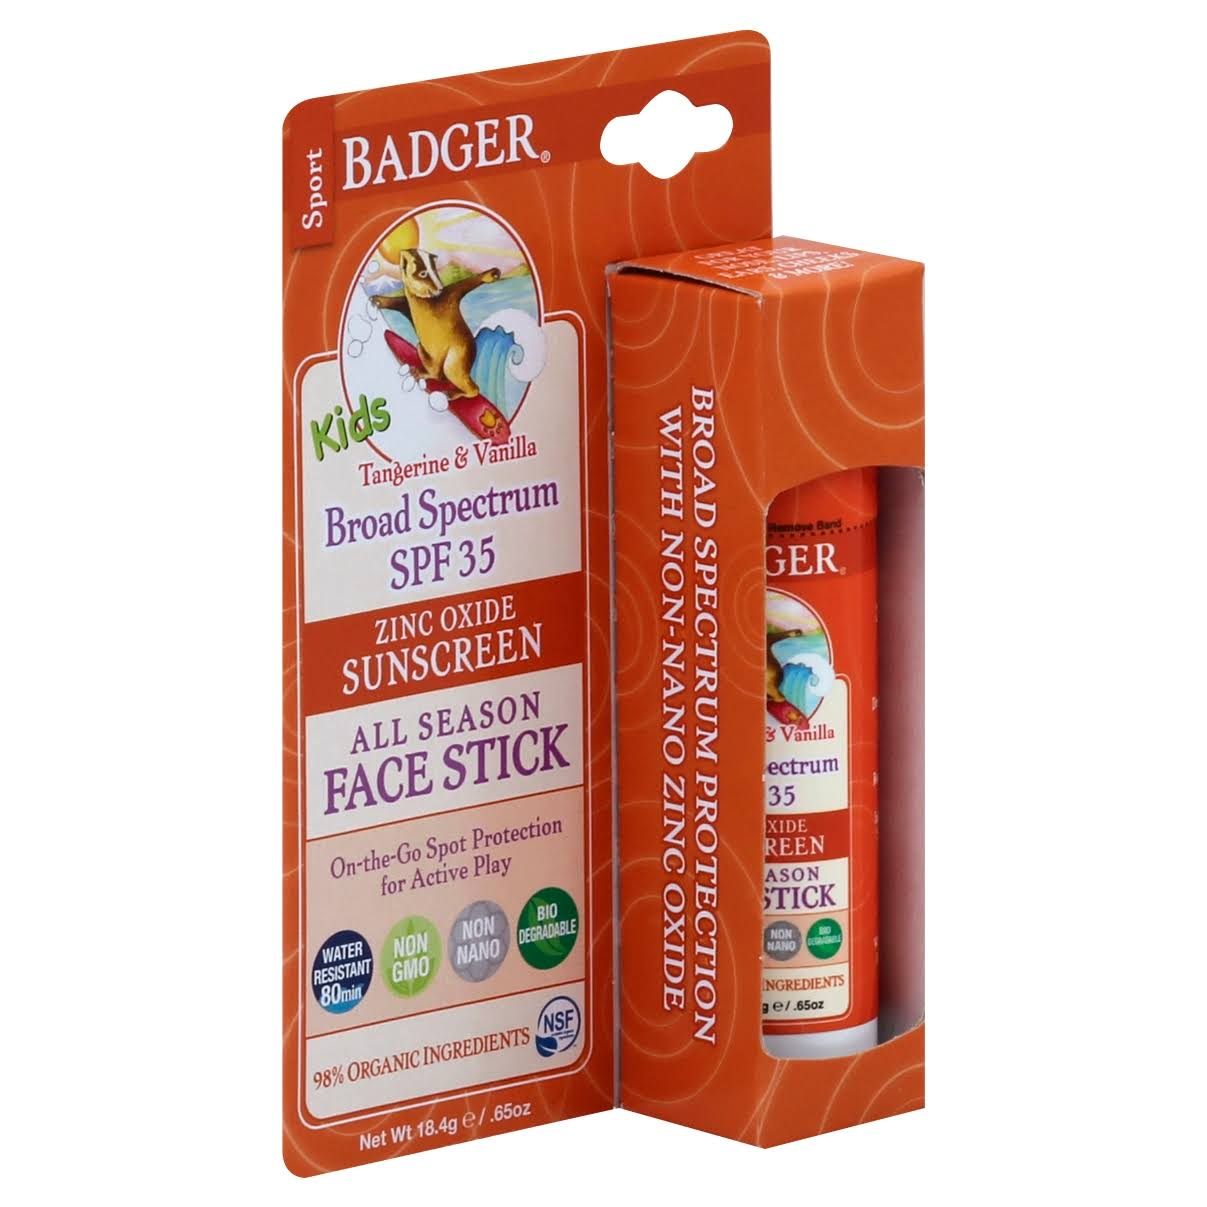 Badger Kids Sport Sunscreen Stick - Broad Spectrum, Tangerine and Vanilla, SPF 35